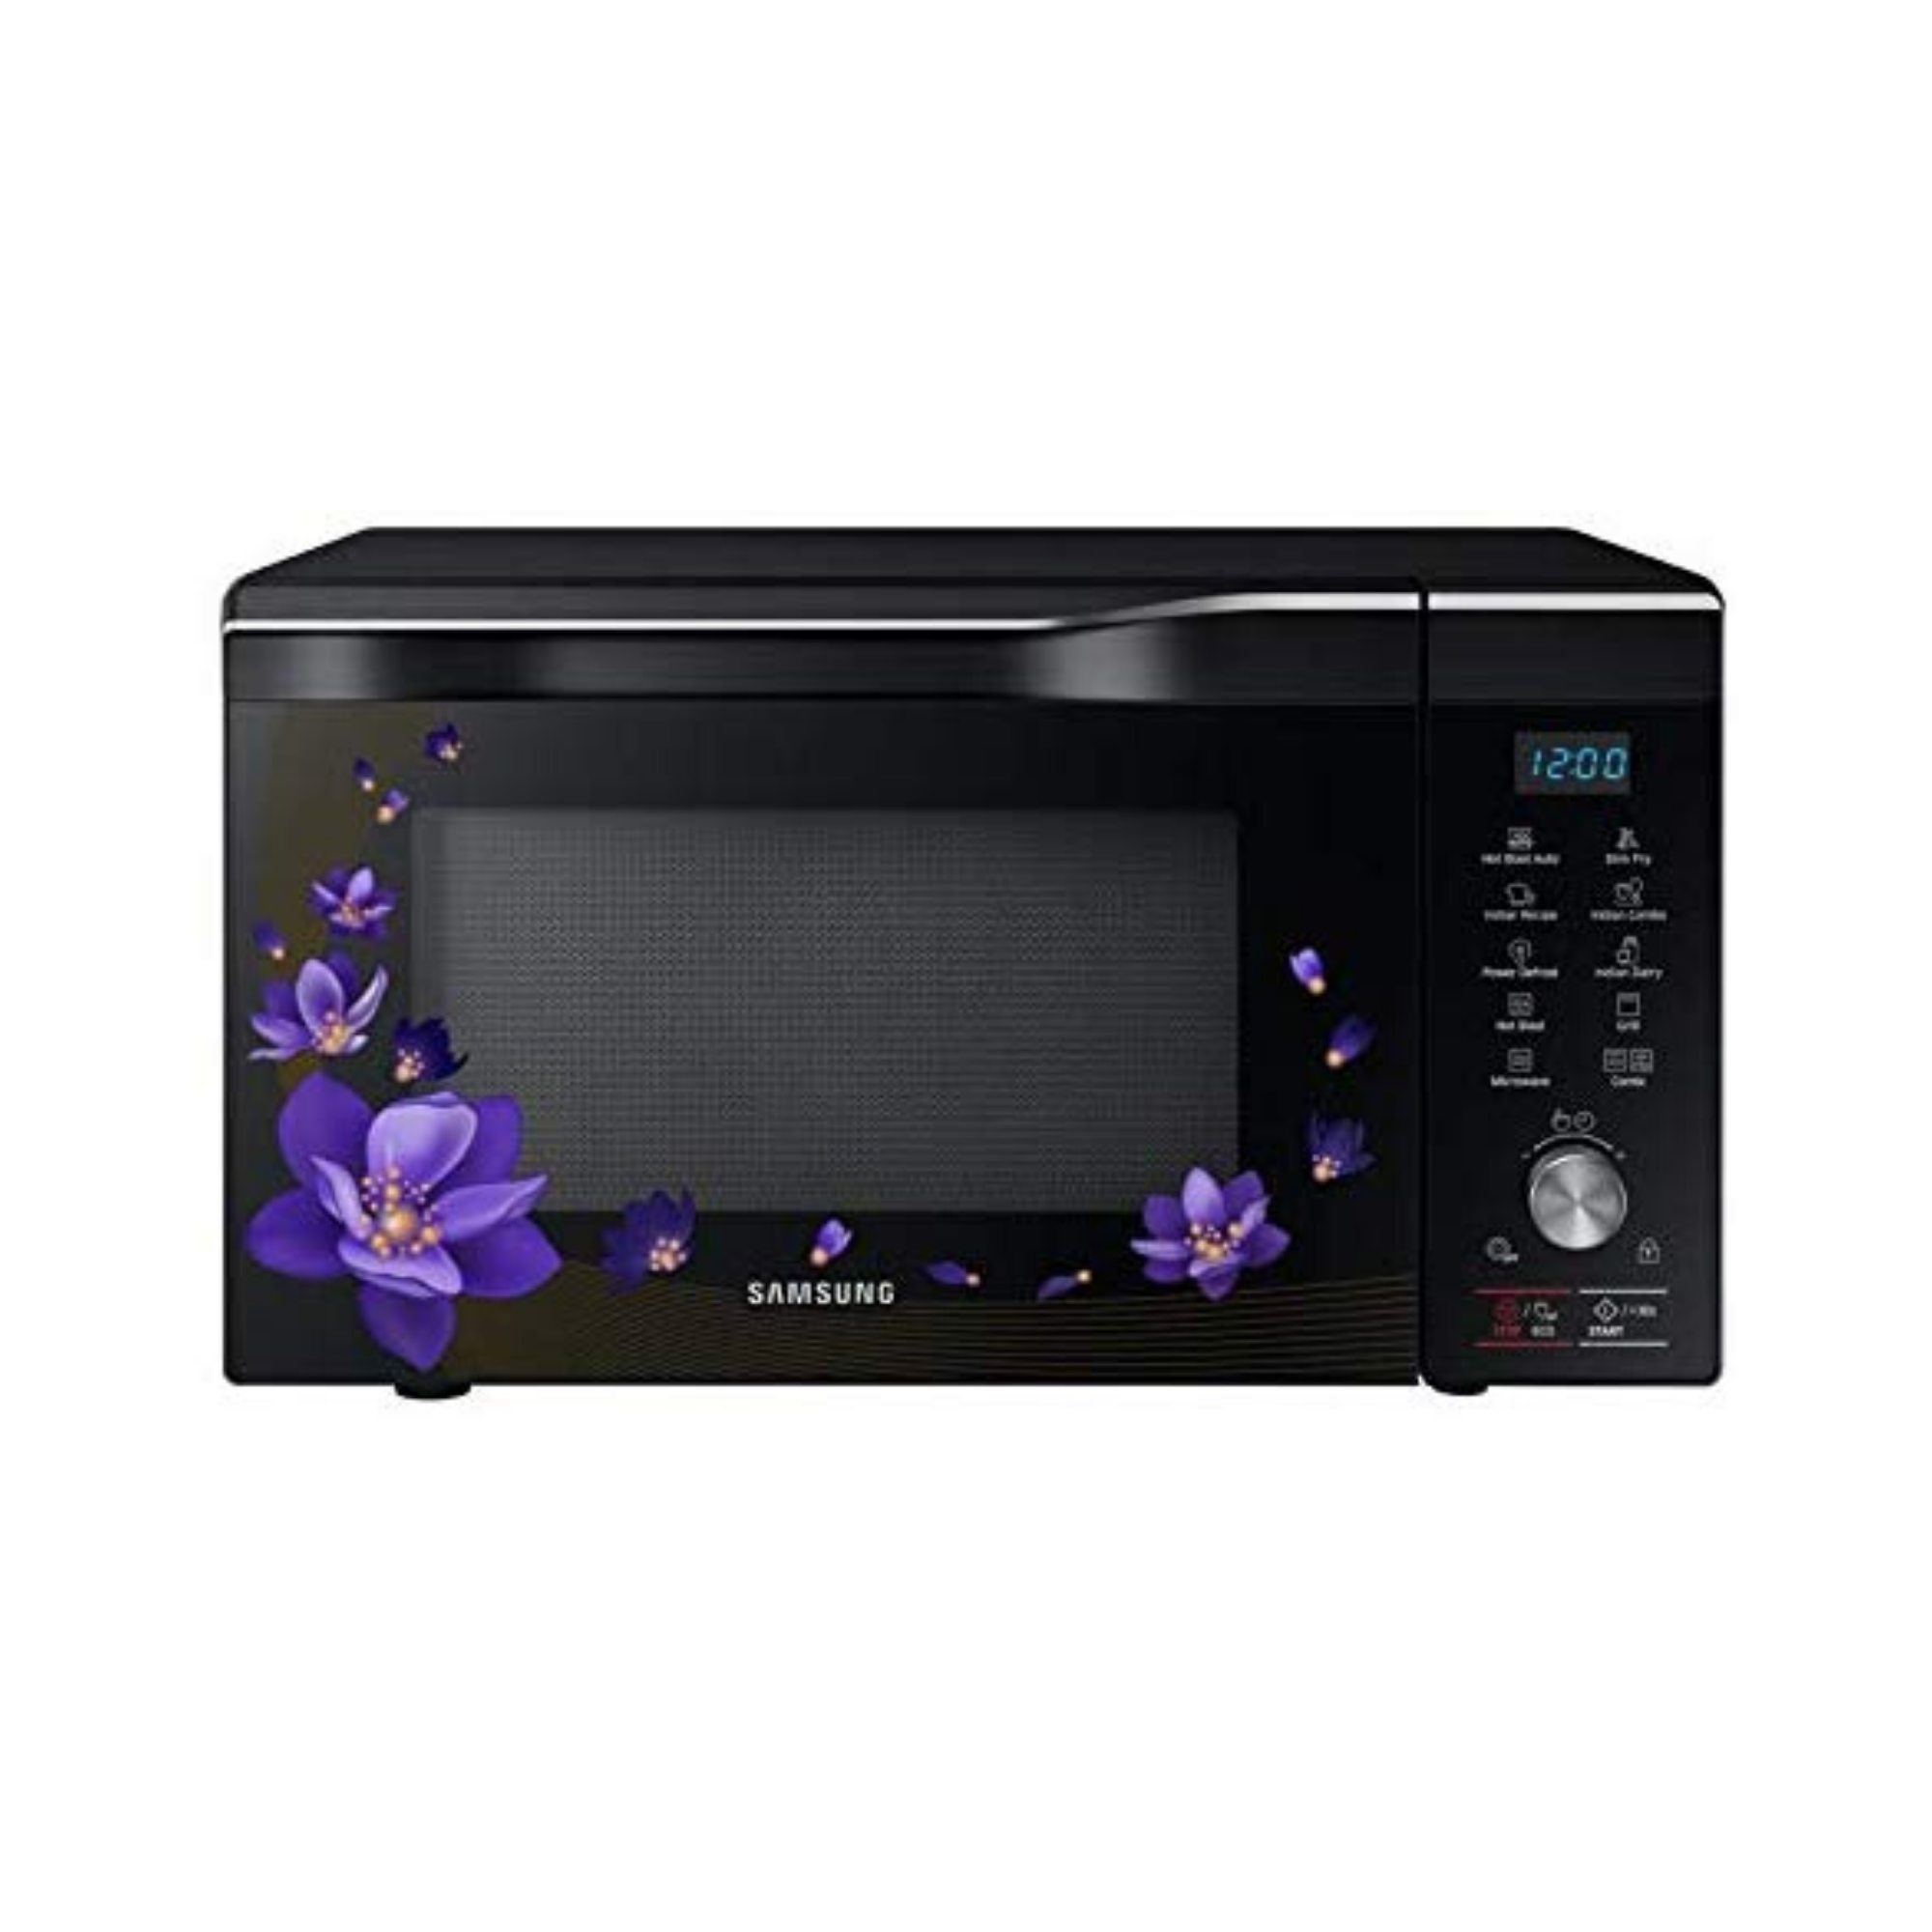 Samsung 32 L Convection Microwave Oven (MC32K7055VC/TL, Black)